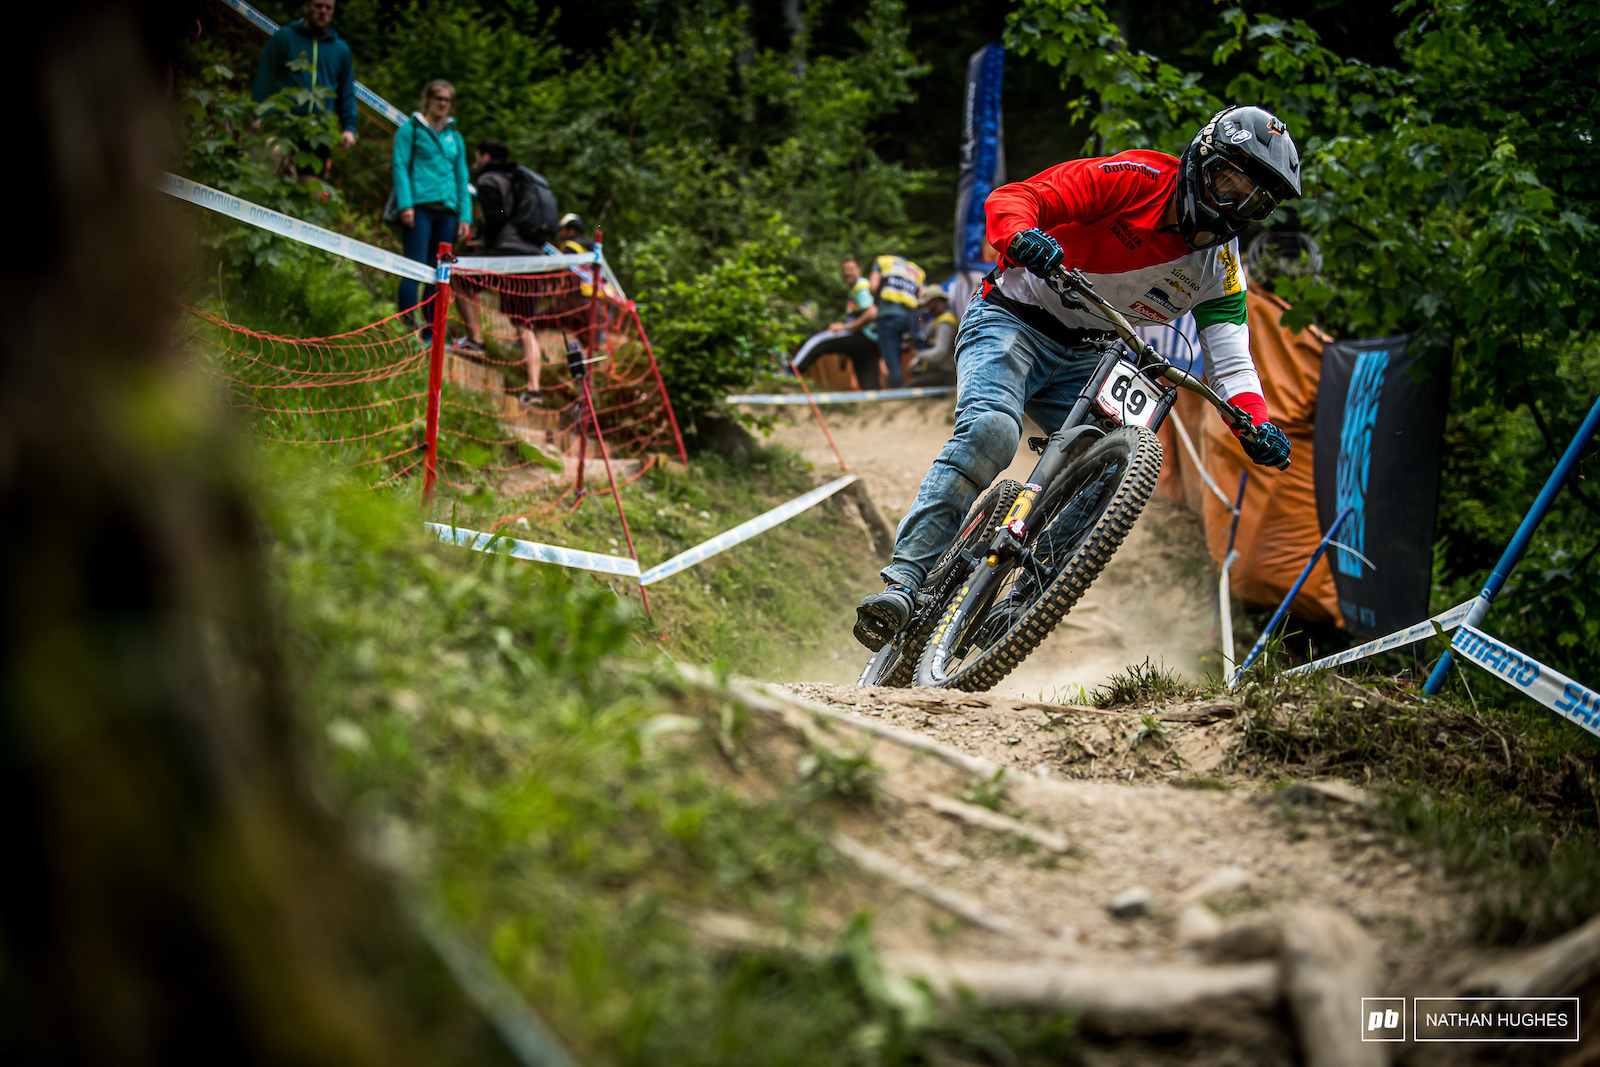 69 and jeans. Privateer Johannes von Klebelsberg rode to 16th place.